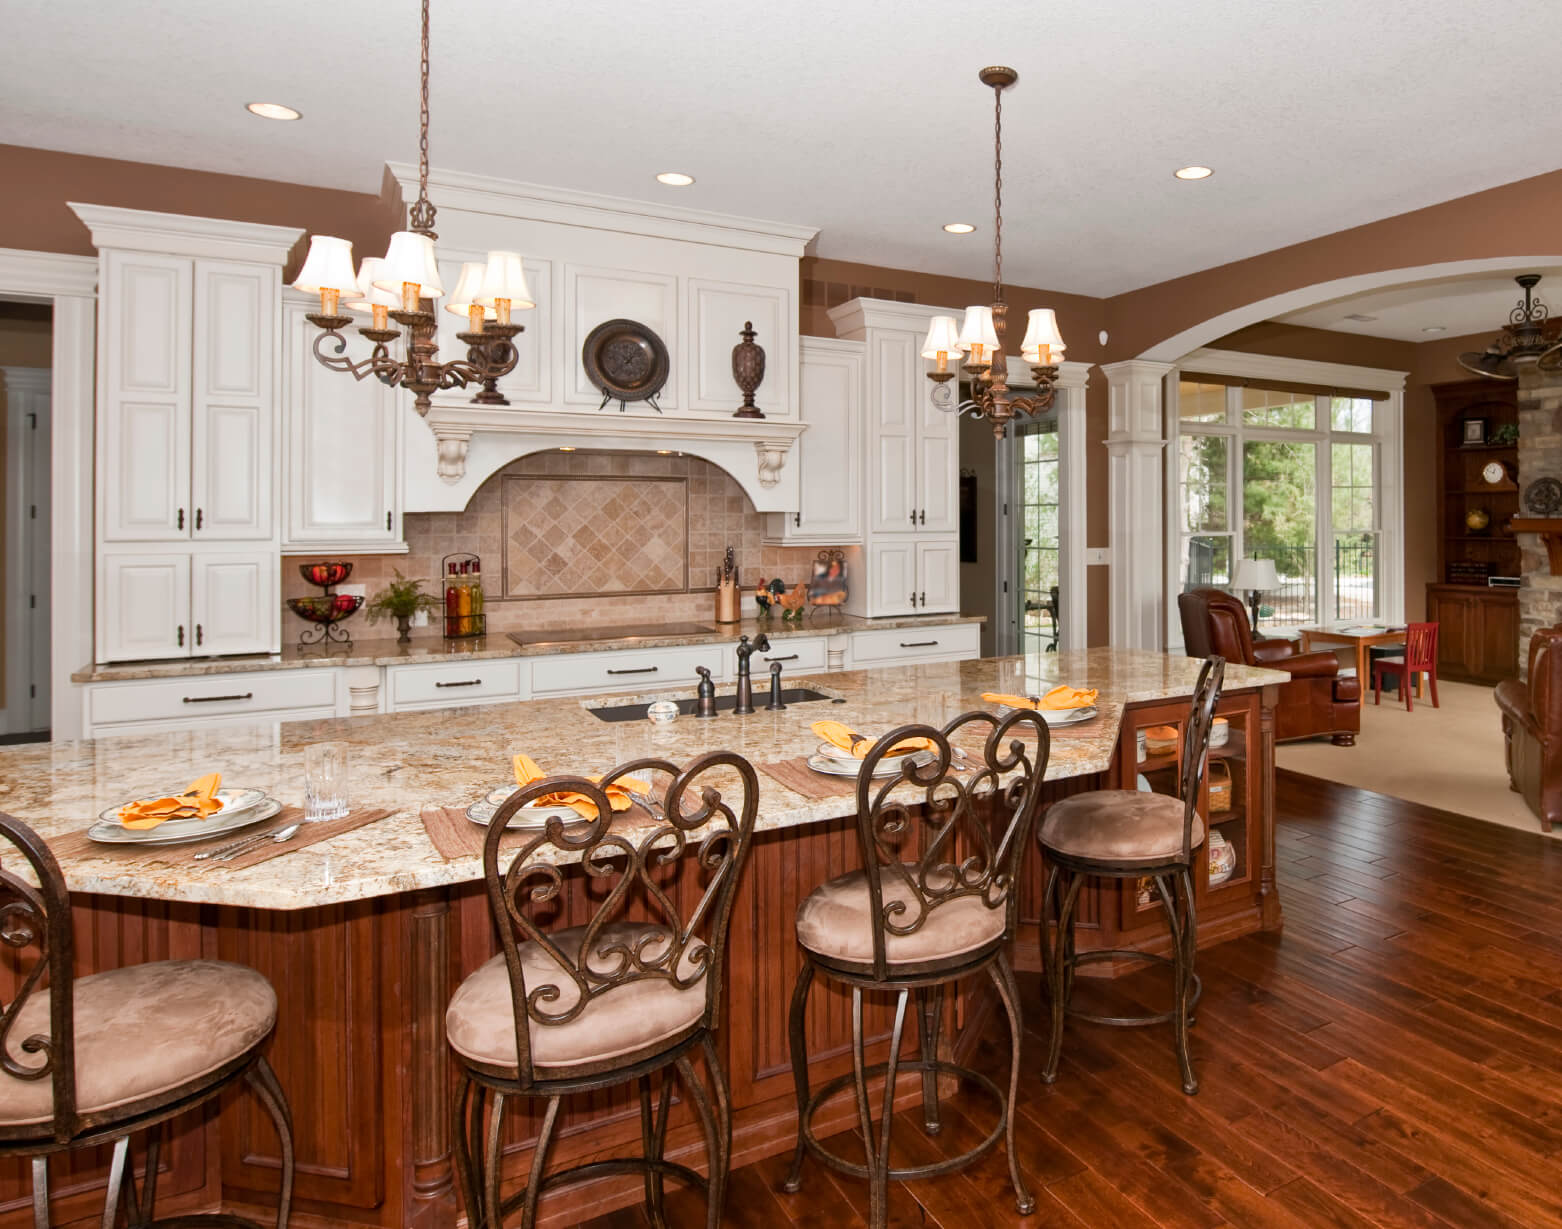 high chair that attaches to counter target tables and chairs 84 custom luxury kitchen island ideas designs pictures